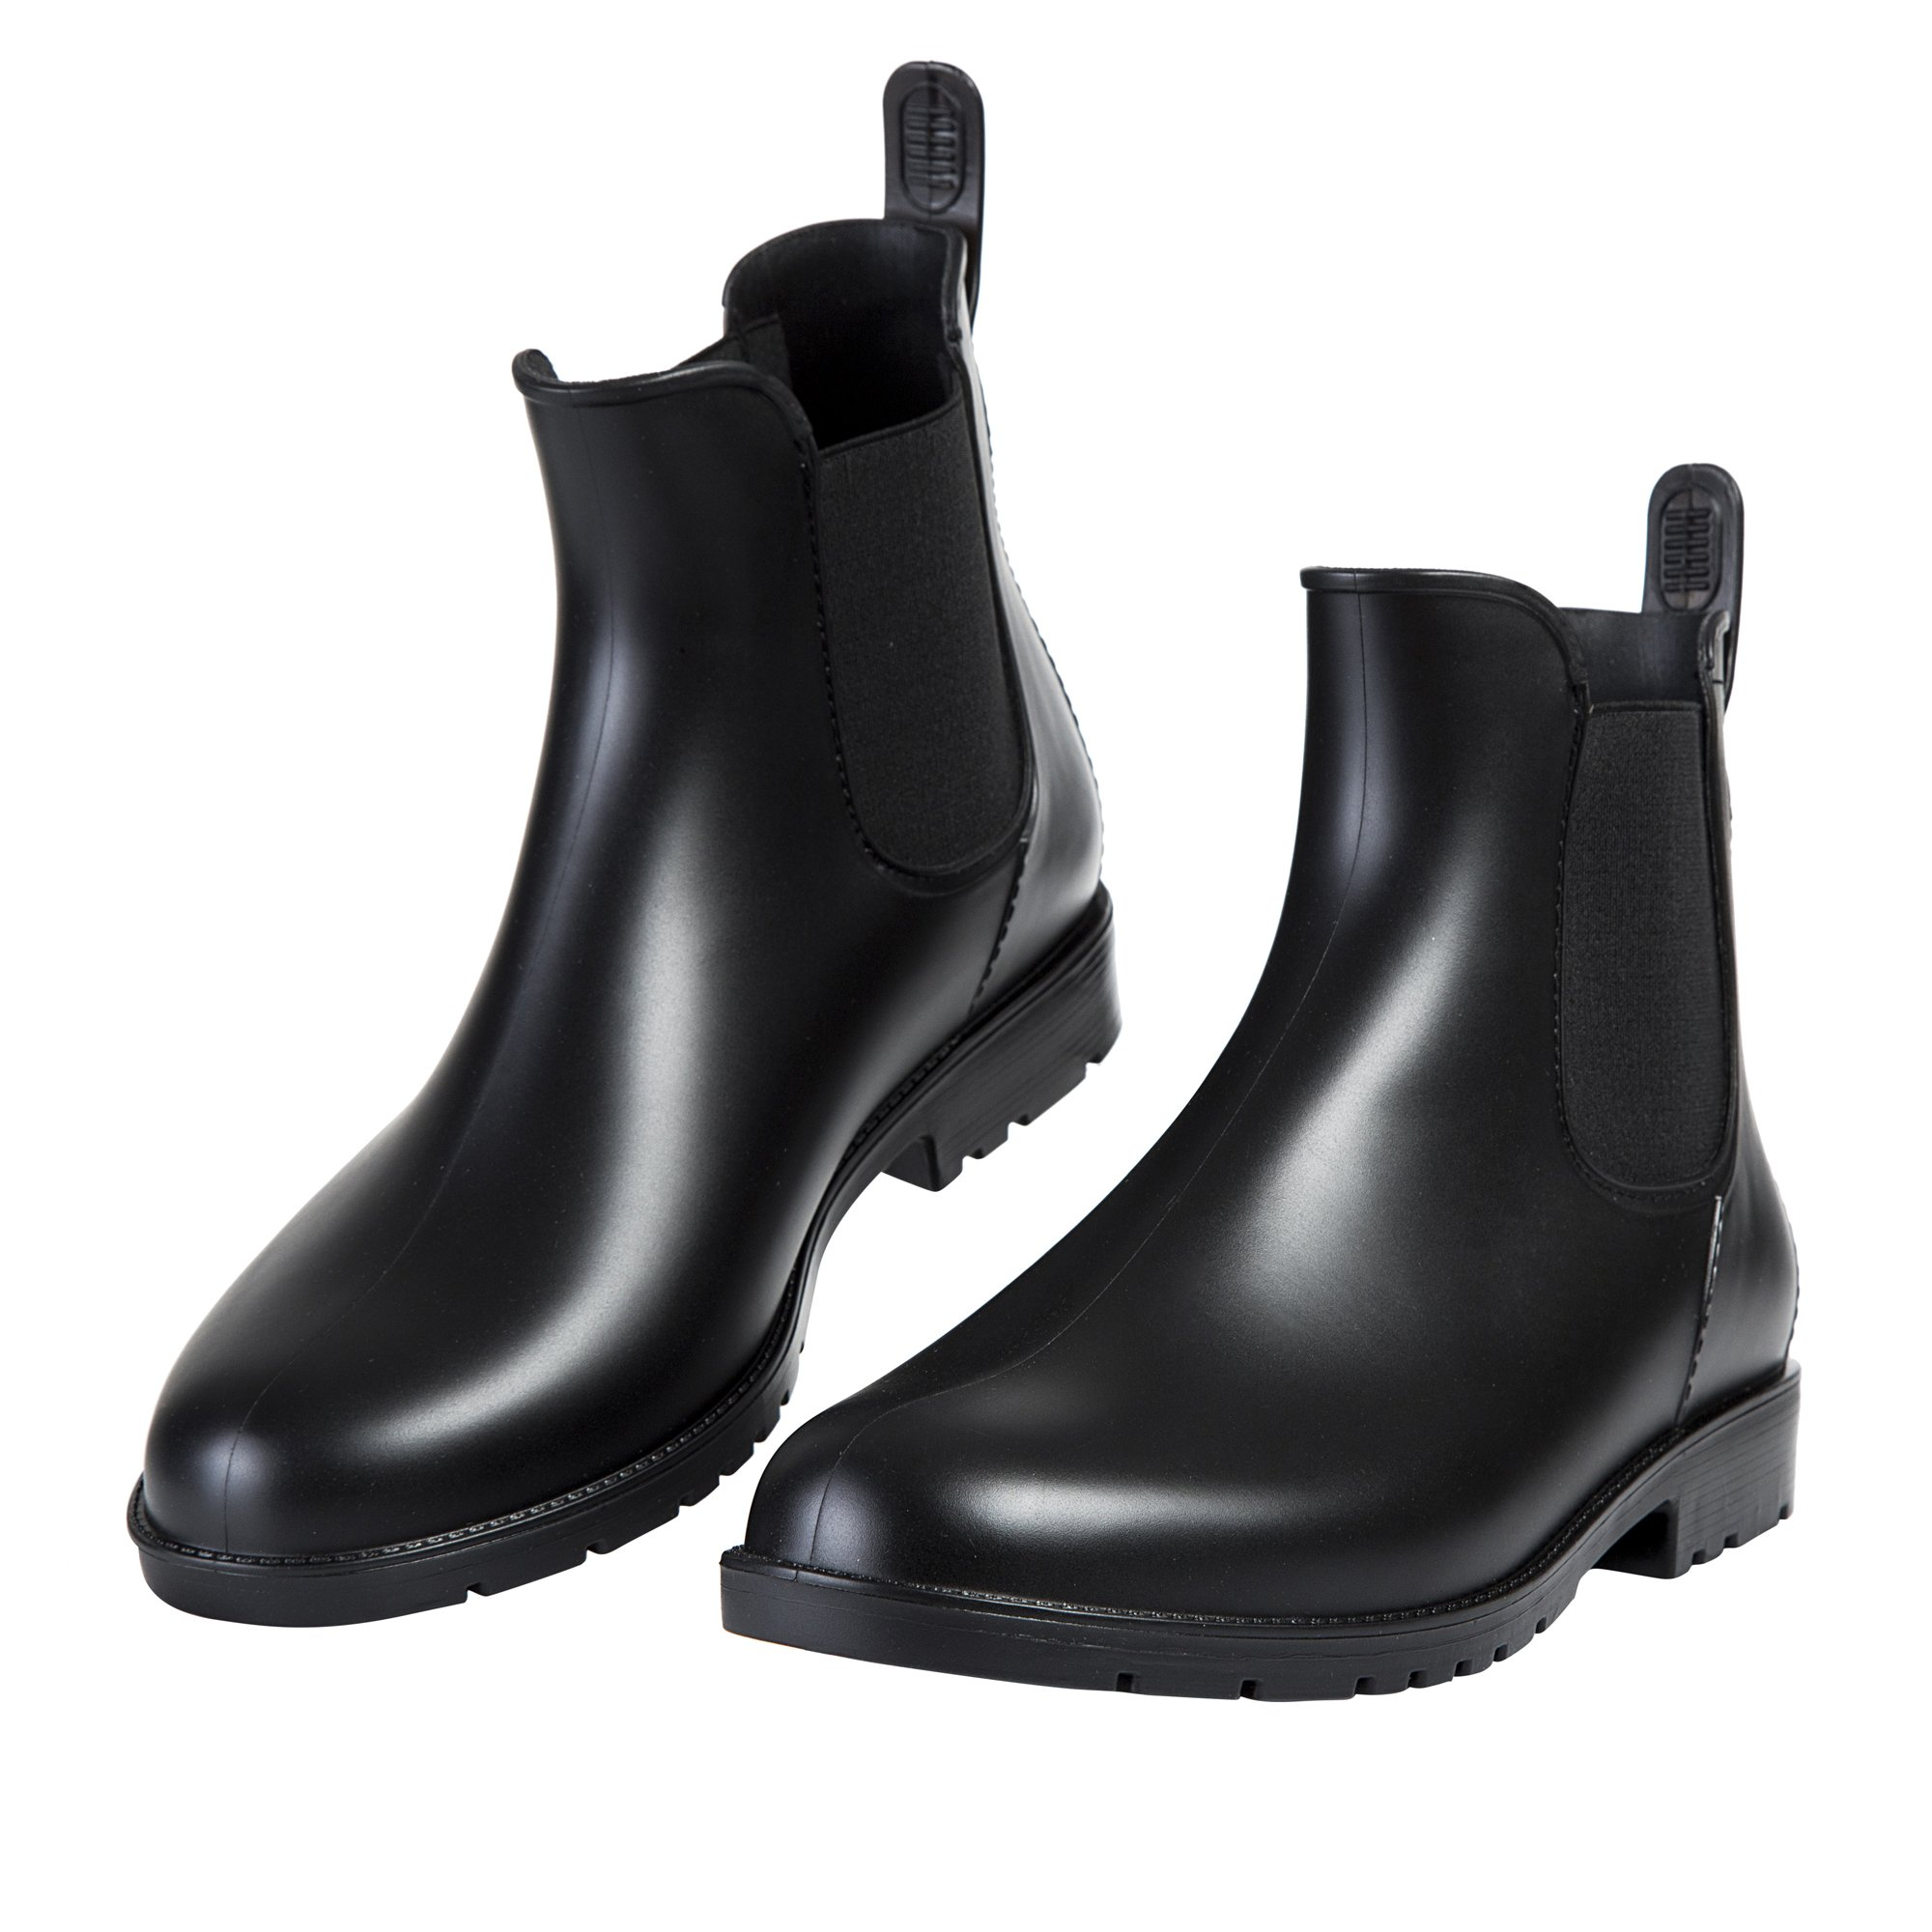 Asgard Women's Short Rain Boots Waterproof Black Elastic Slip On Ankel Booties B36